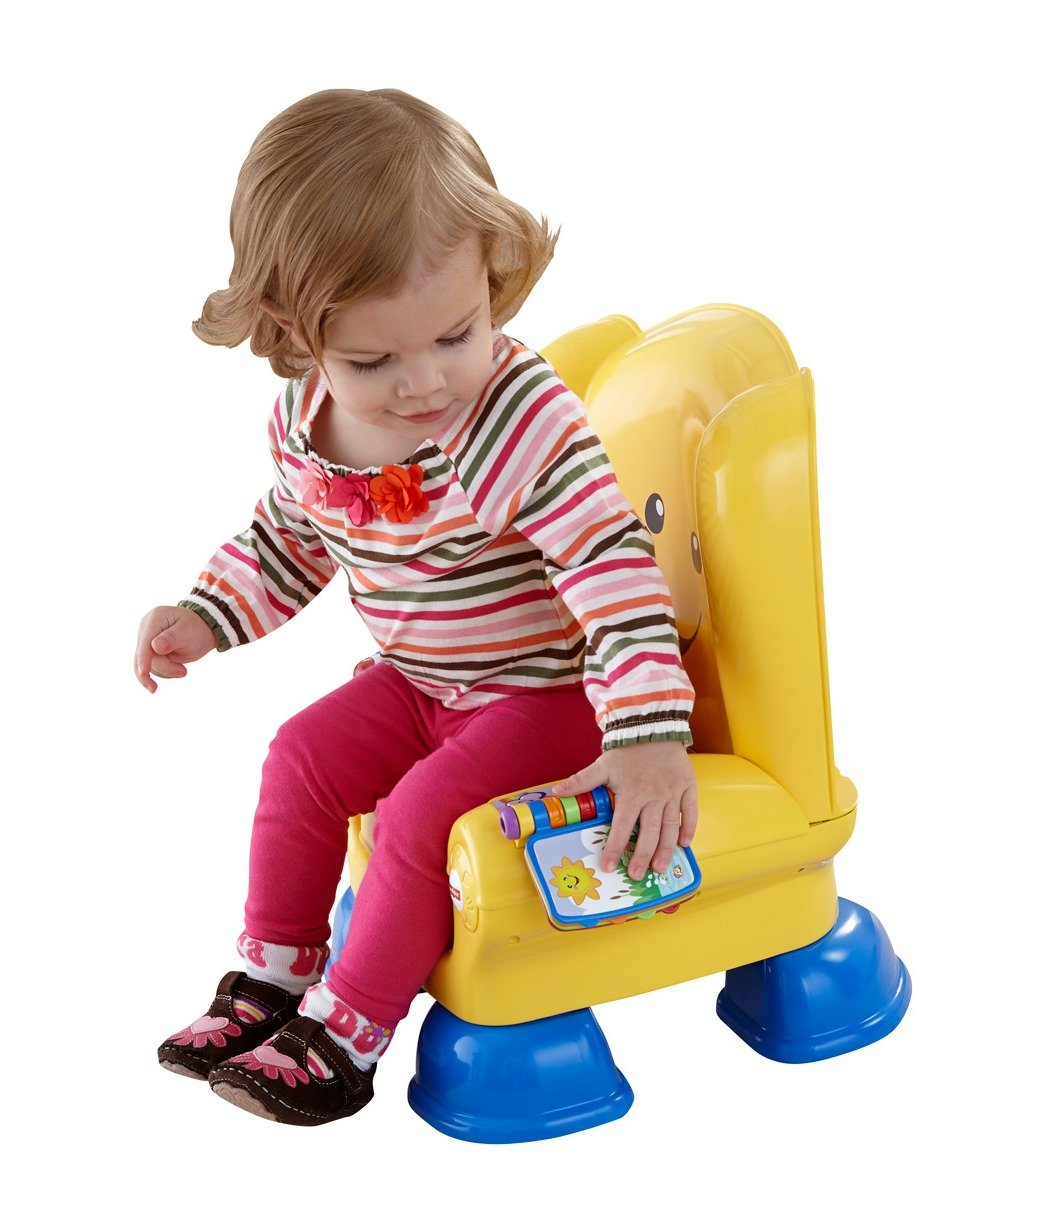 Fisher price smart stages chair - It S Baby S Very Own Place To Sit And Discover New Things This Magic Abc Seat Knows When Baby Sits Activating Songs And Phrases When Baby Stands